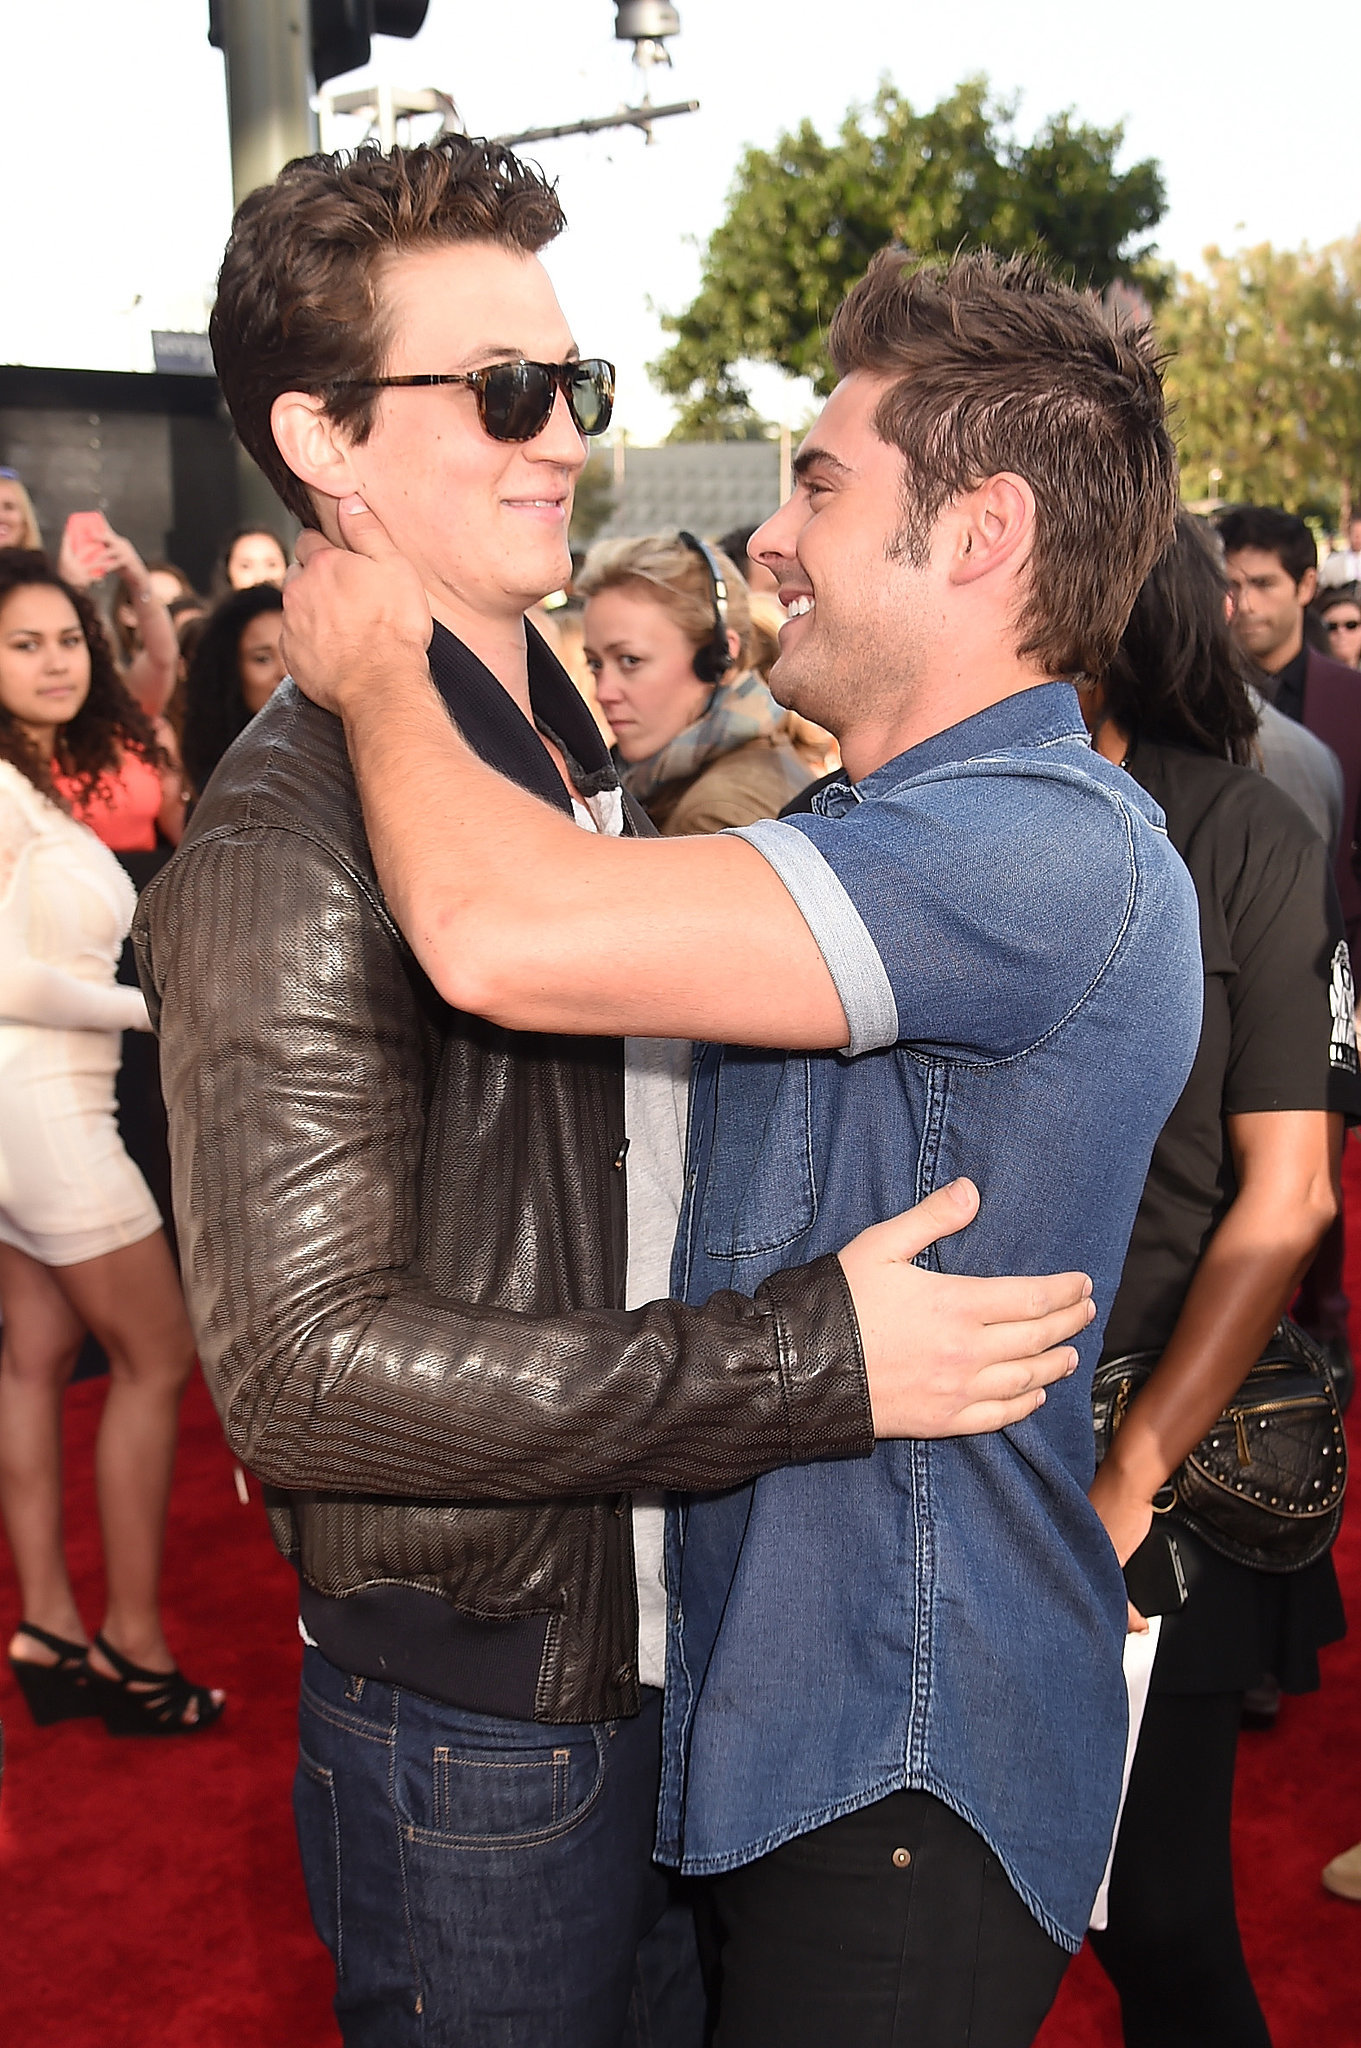 Zac Efron looked happy to see Miles Teller.